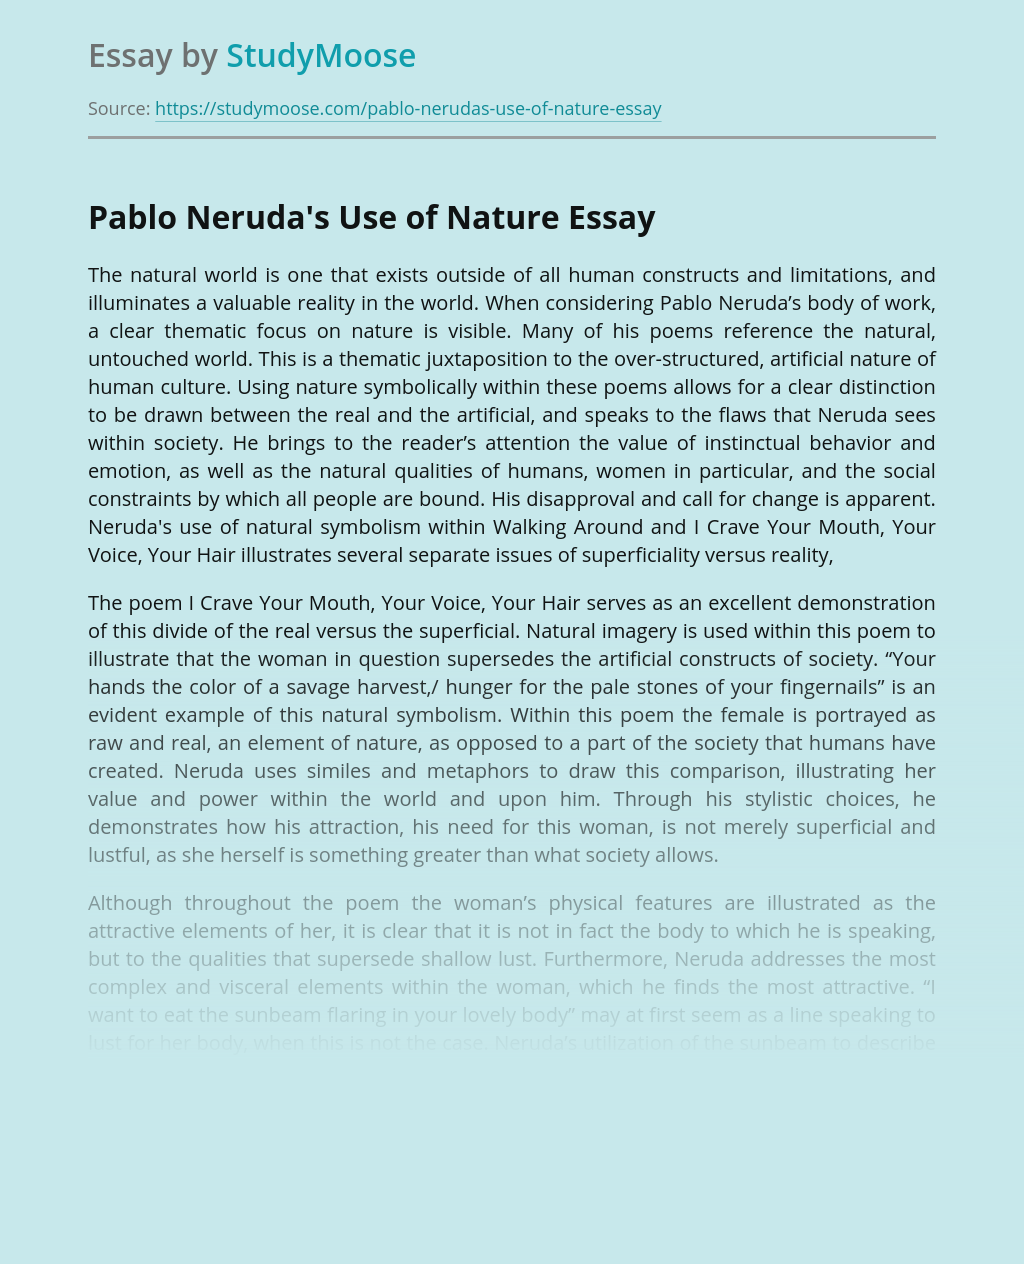 Pablo Neruda's Use of Nature